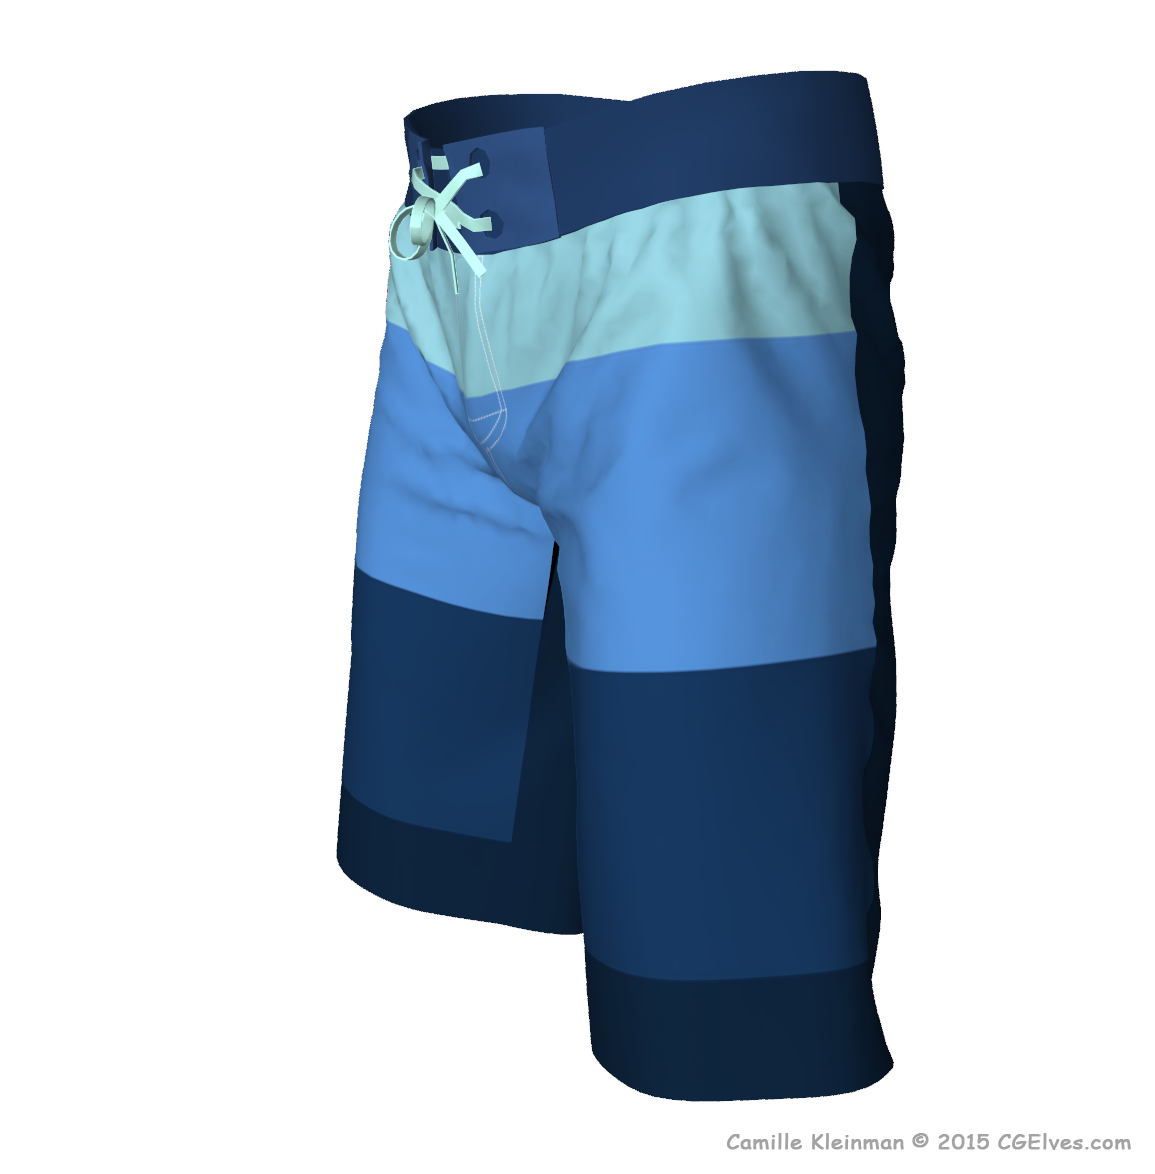 Drawing shorts wrinkled pants. Awesome d virtual marvelous